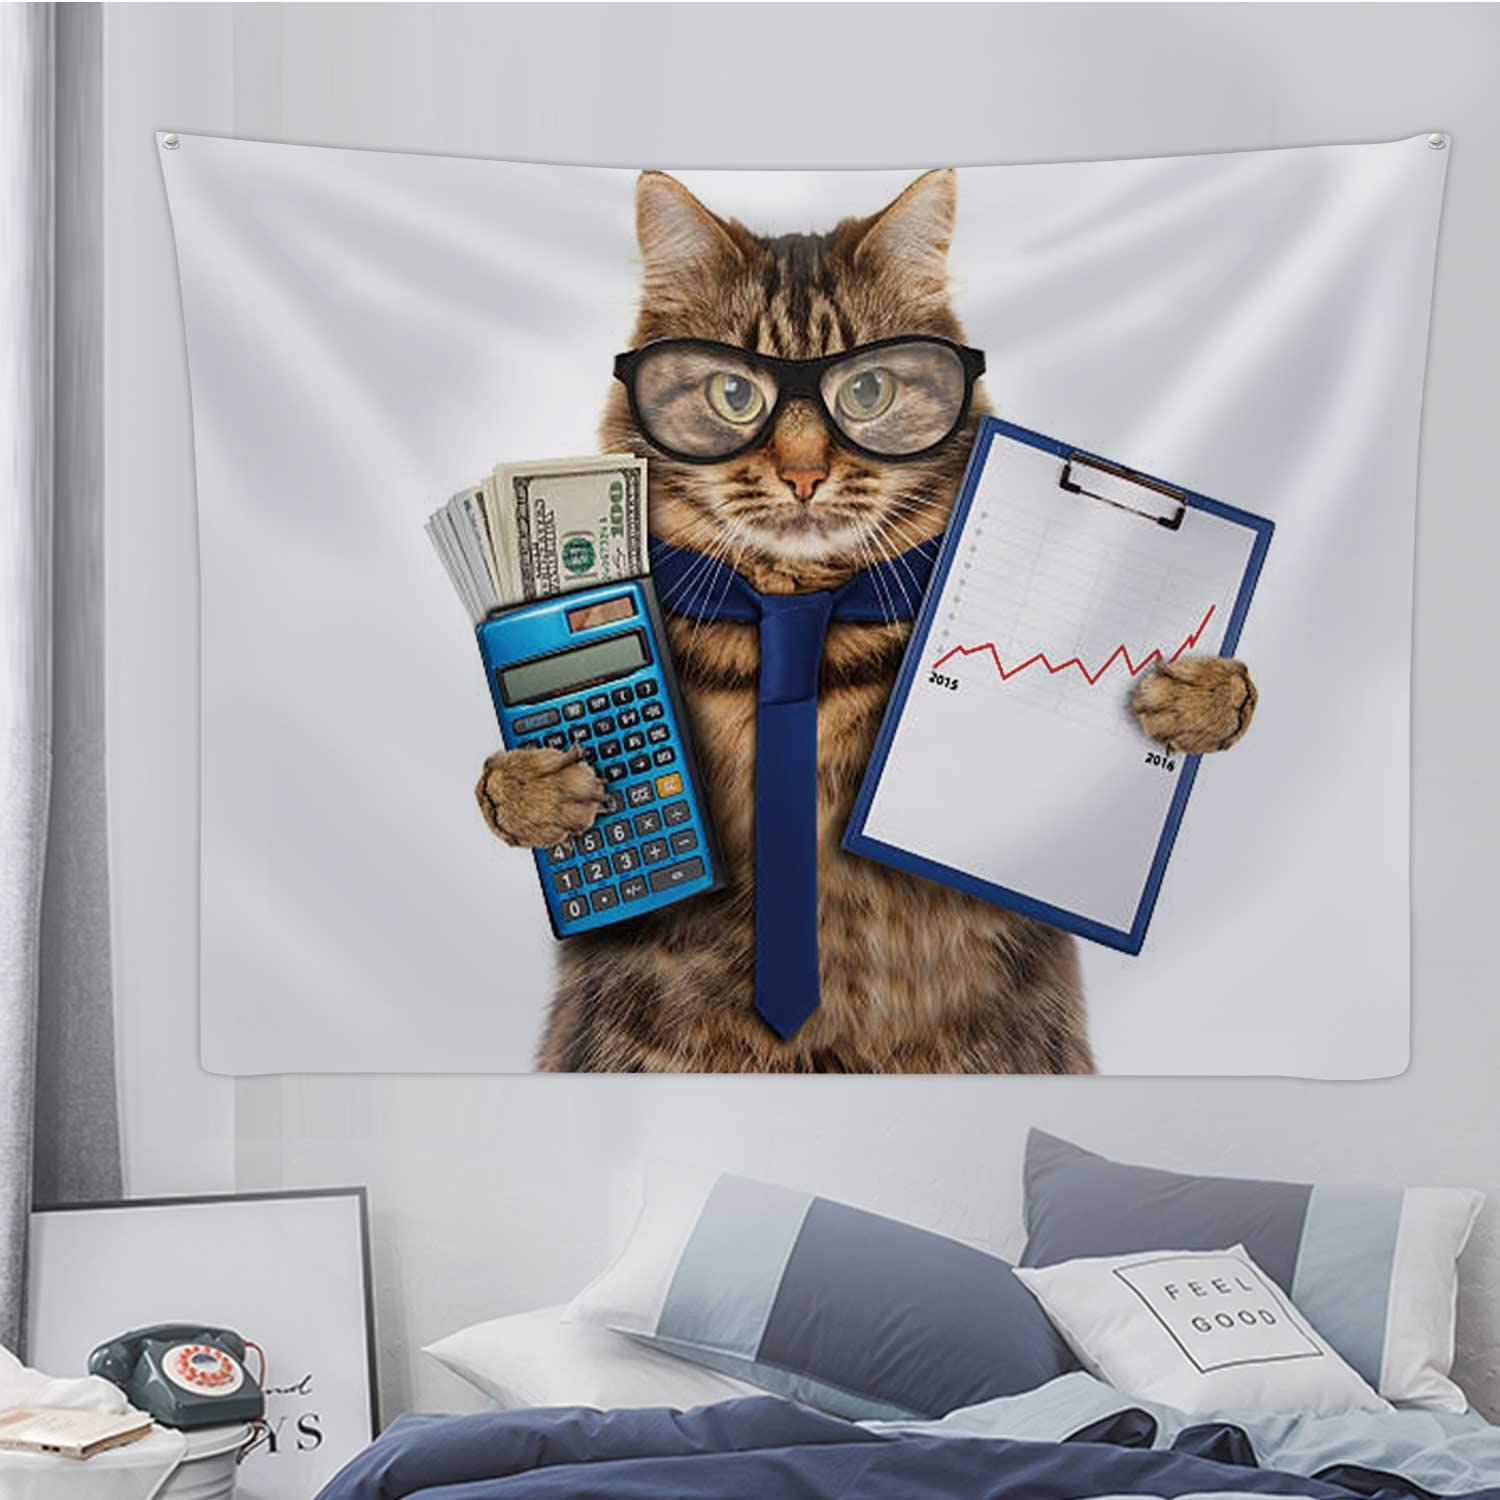 Hitecera Funny Cat with A Folder for Presentations.Domestic Cat,Tapestry Wall Hanging Financial Advisor Wall Art for Bedroom Decor 59.1X51.1in